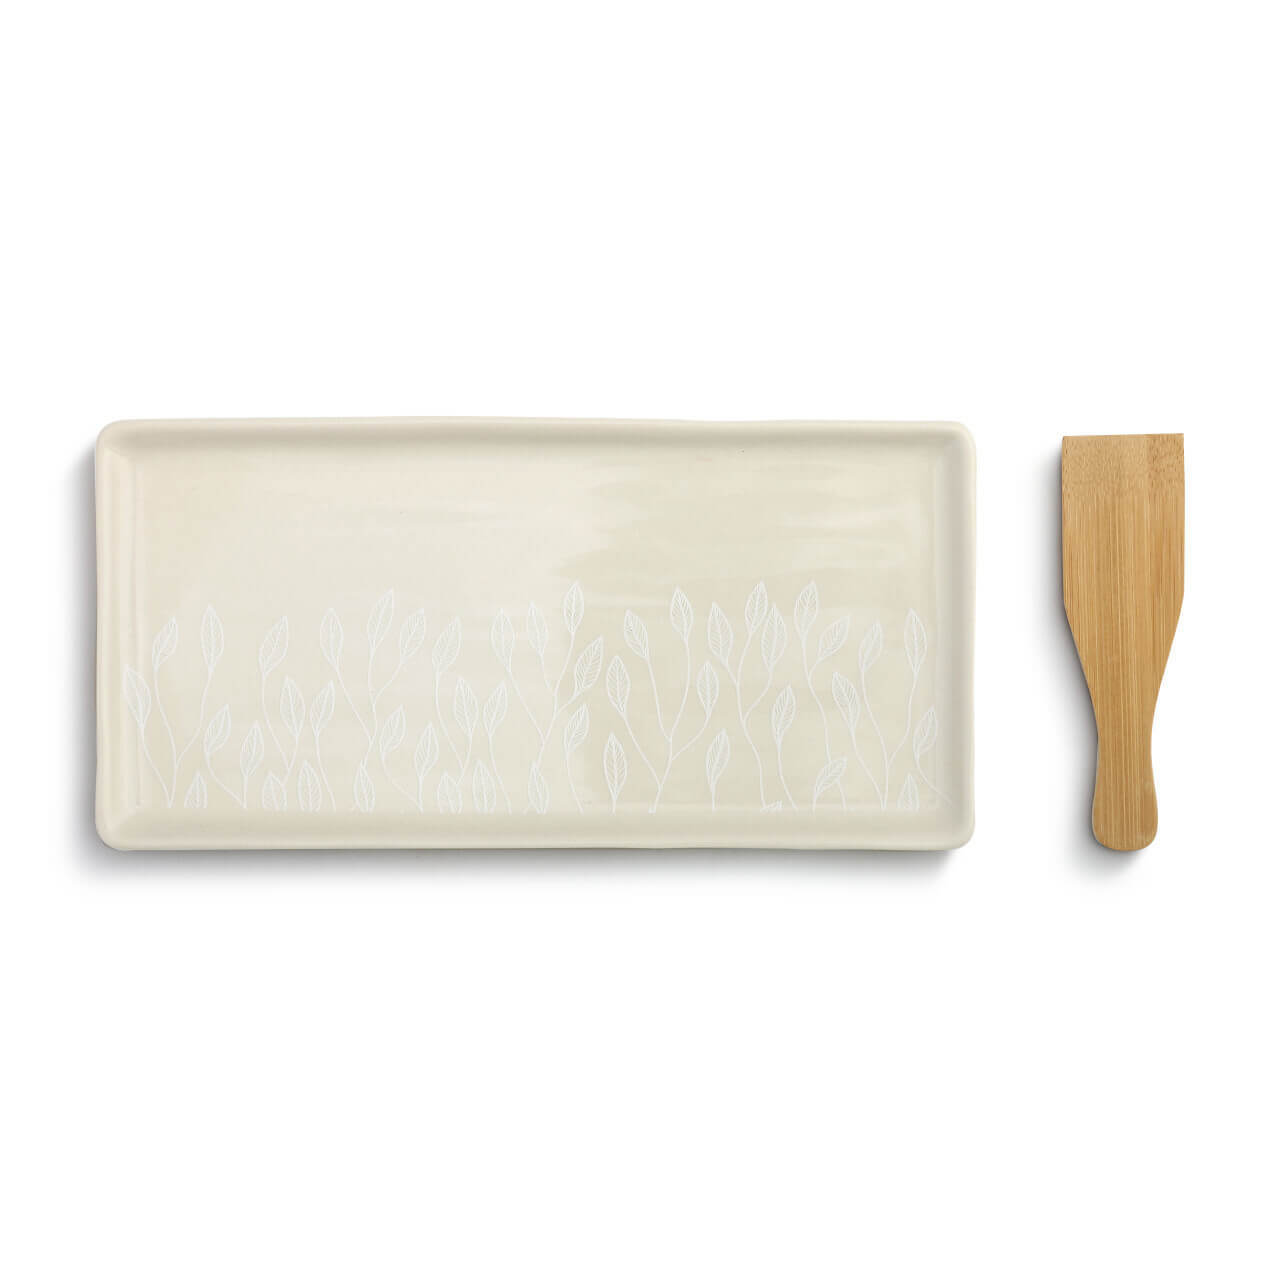 This appetizer tray with spatula makes serving easy. The stoneware plate features a leaf vine design painted in white and comes with a wooden bamboo utensil.